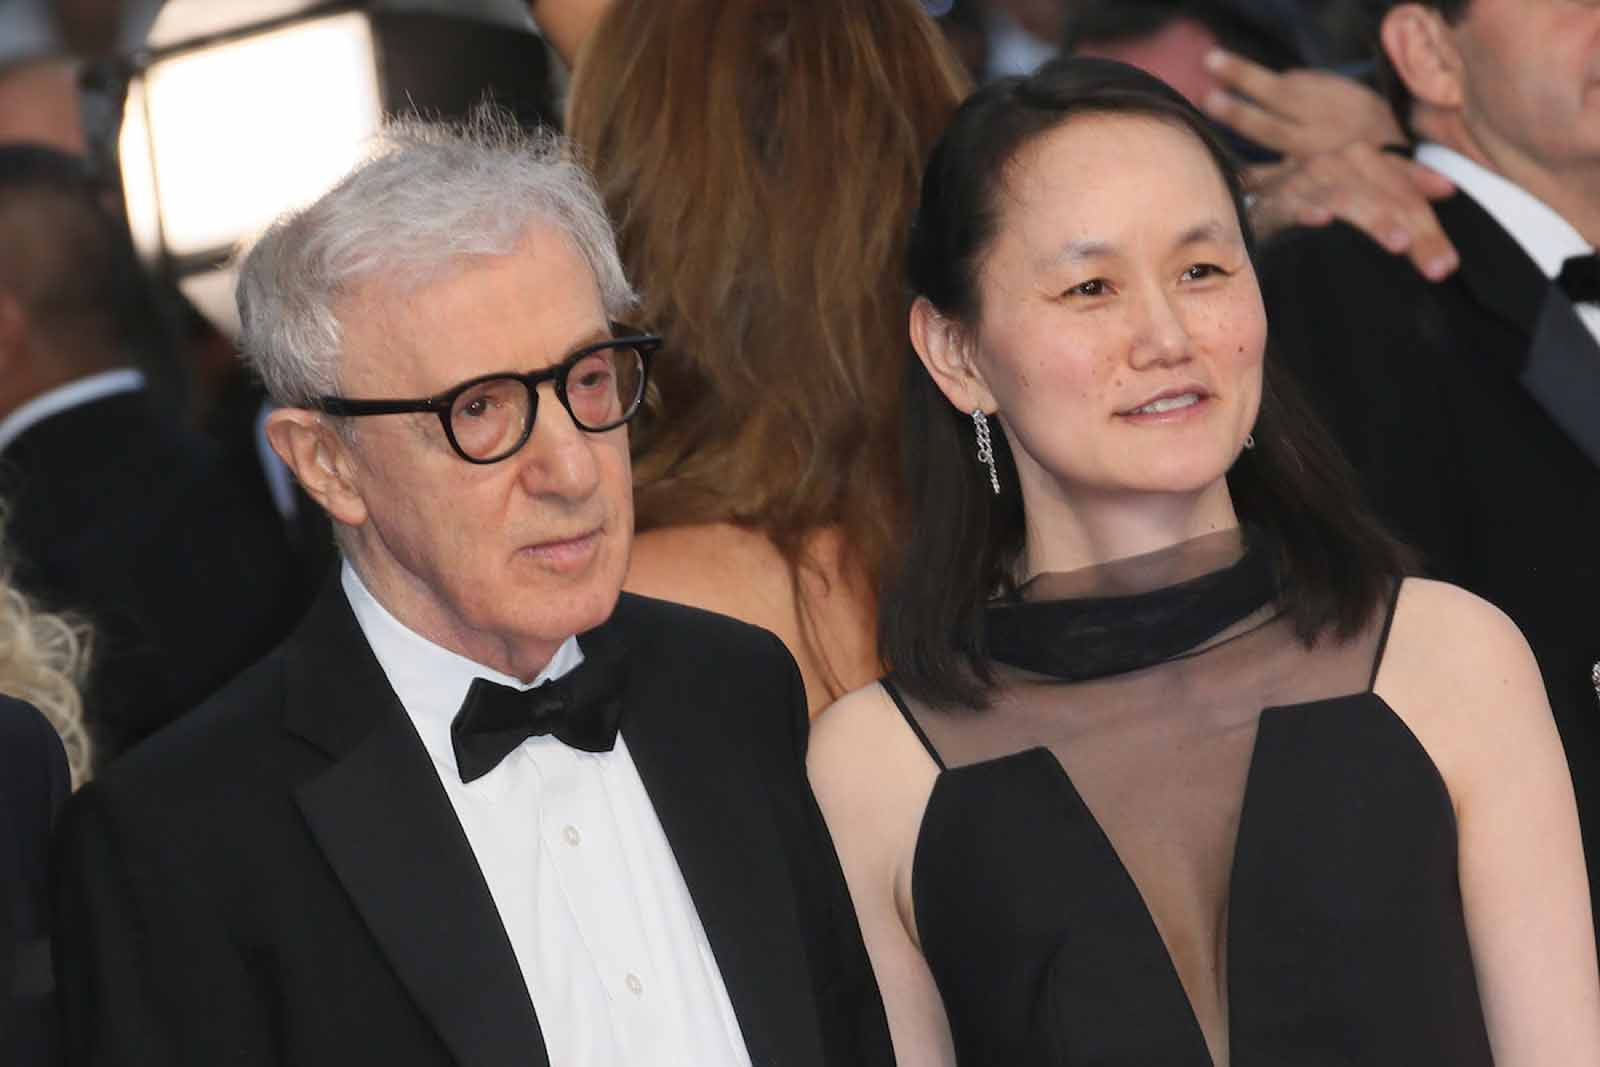 'Allen v Farrow' has released to acclaim, but Woody Allen is not happy. See his response to the doc about his relationship with his daughter.